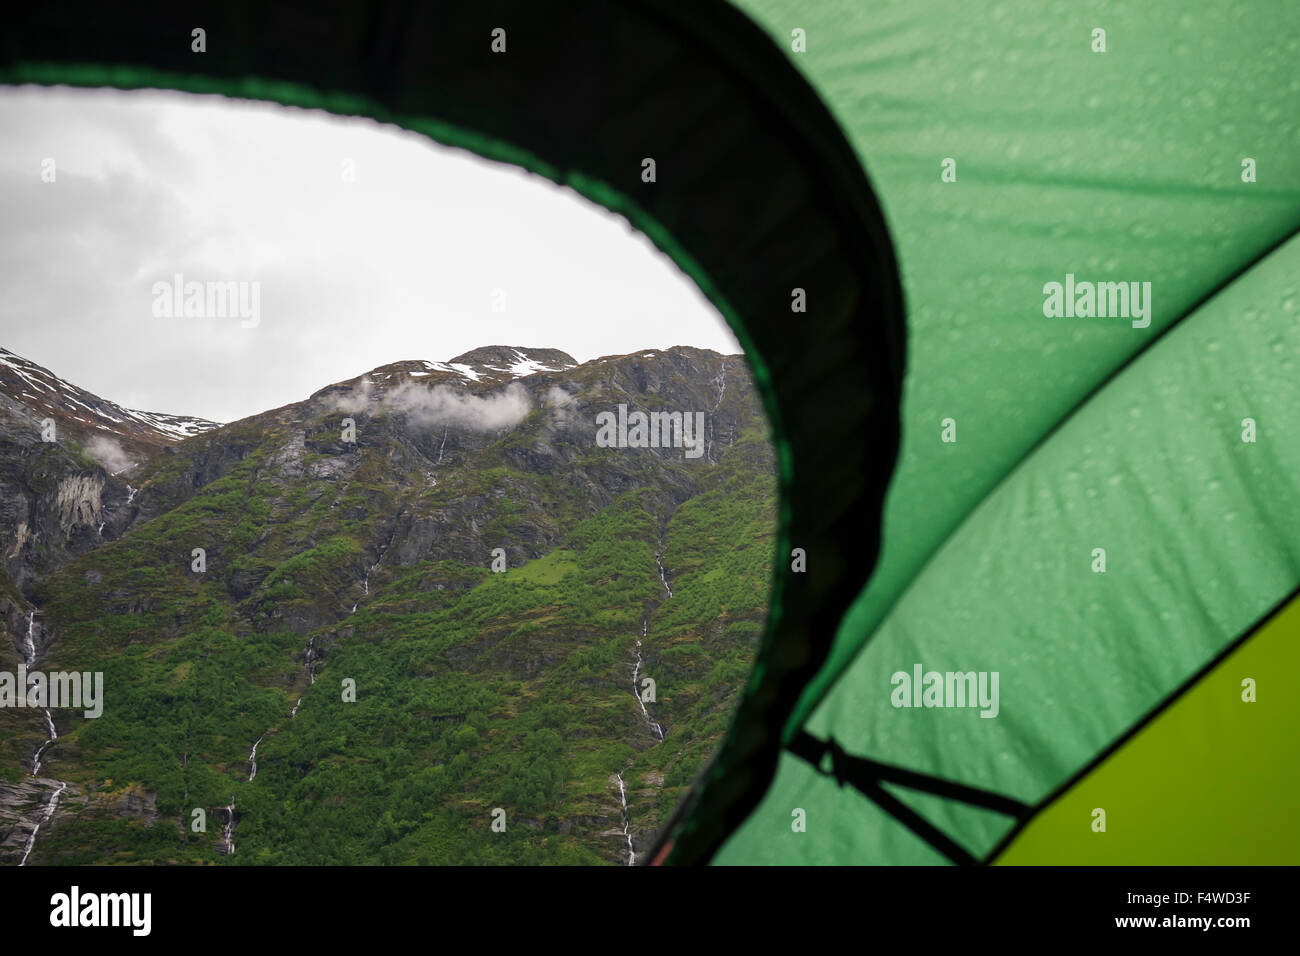 Norway, Sogn og Fjordane, Stryn, Mountain range seeing from tent - Stock Image